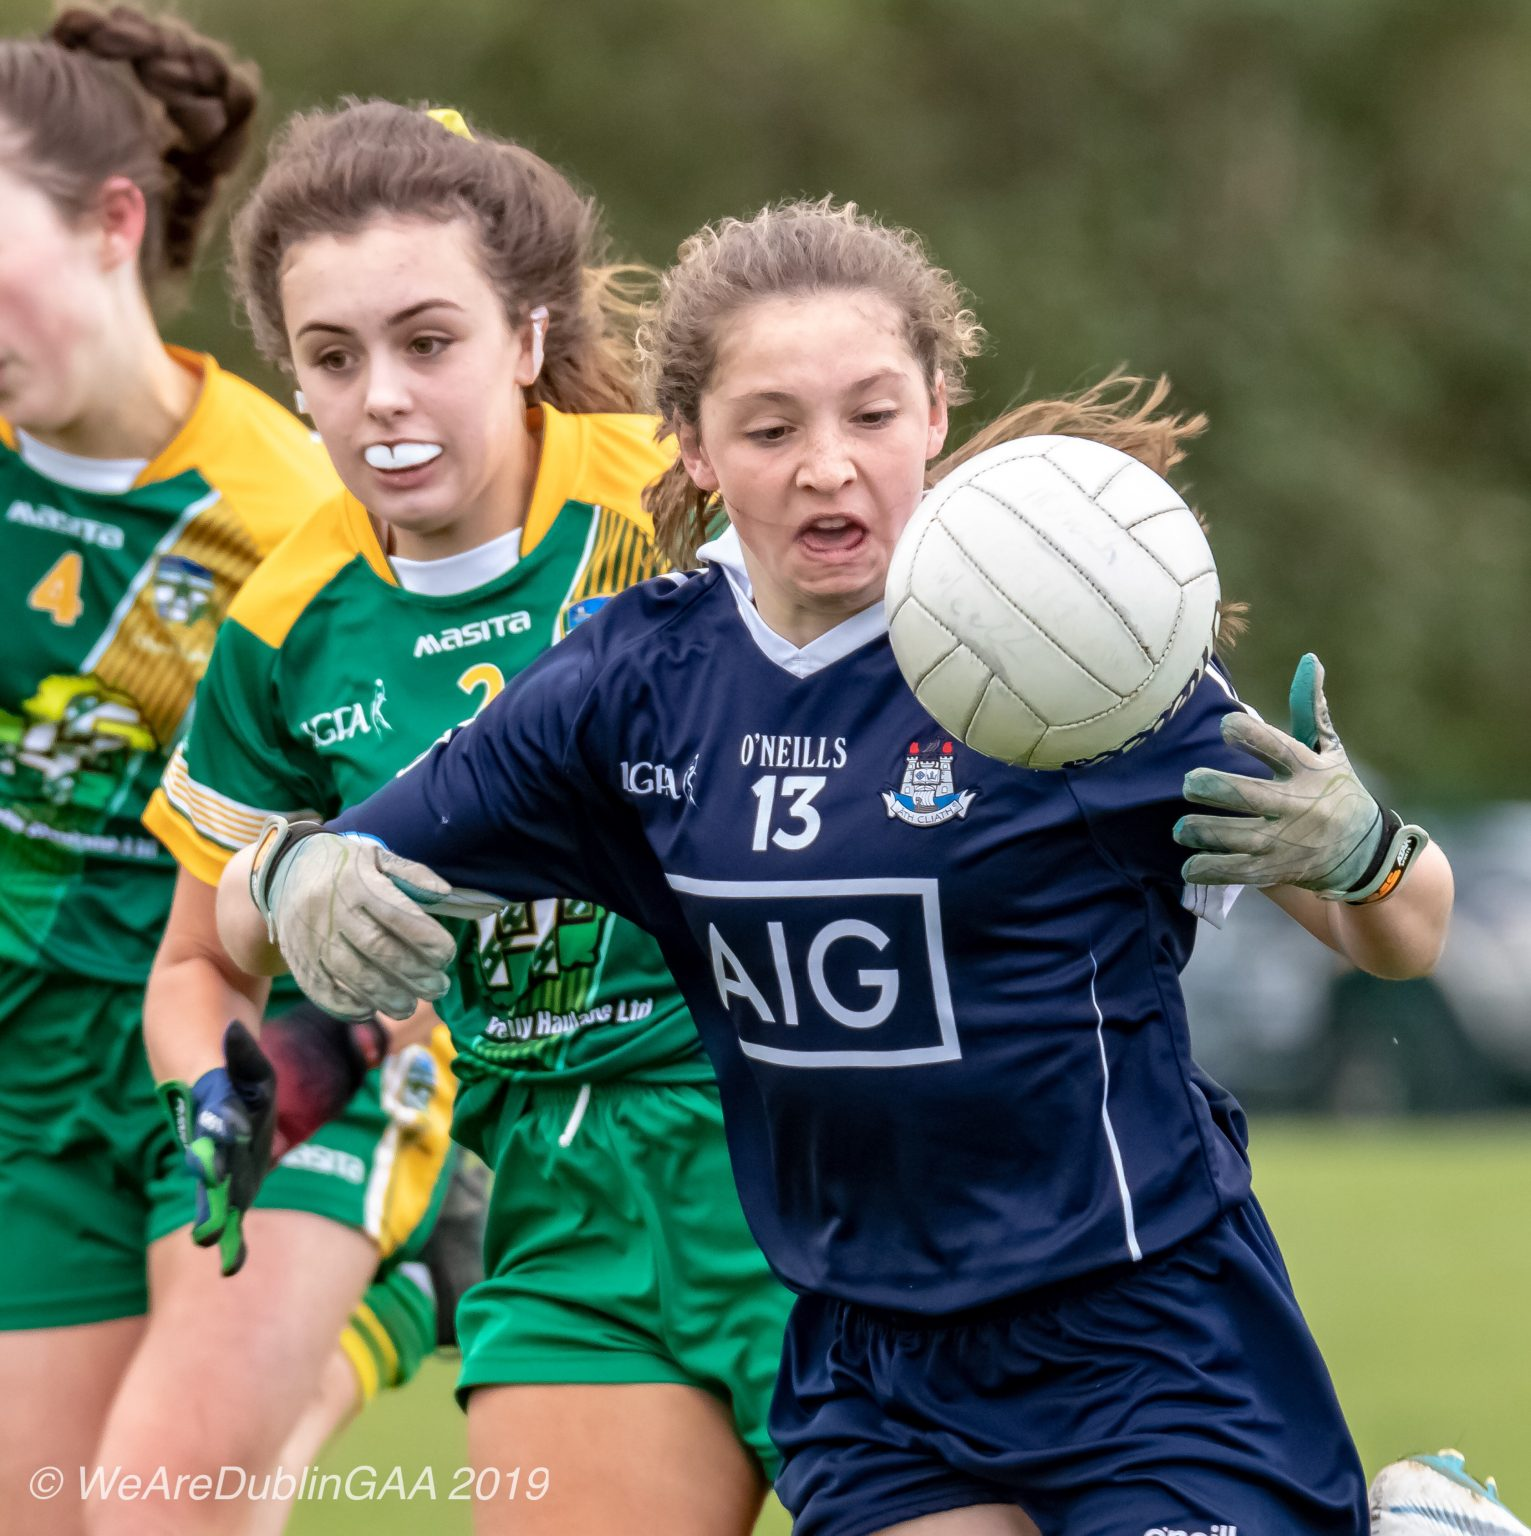 Dublin Ladies Footballer In a Navy Jersey and navy shorts catches the ball while being tackled by a Meath player in a green jersey with yellow stripes across the front and green shorts, Meath won the Leinster U16 championship title